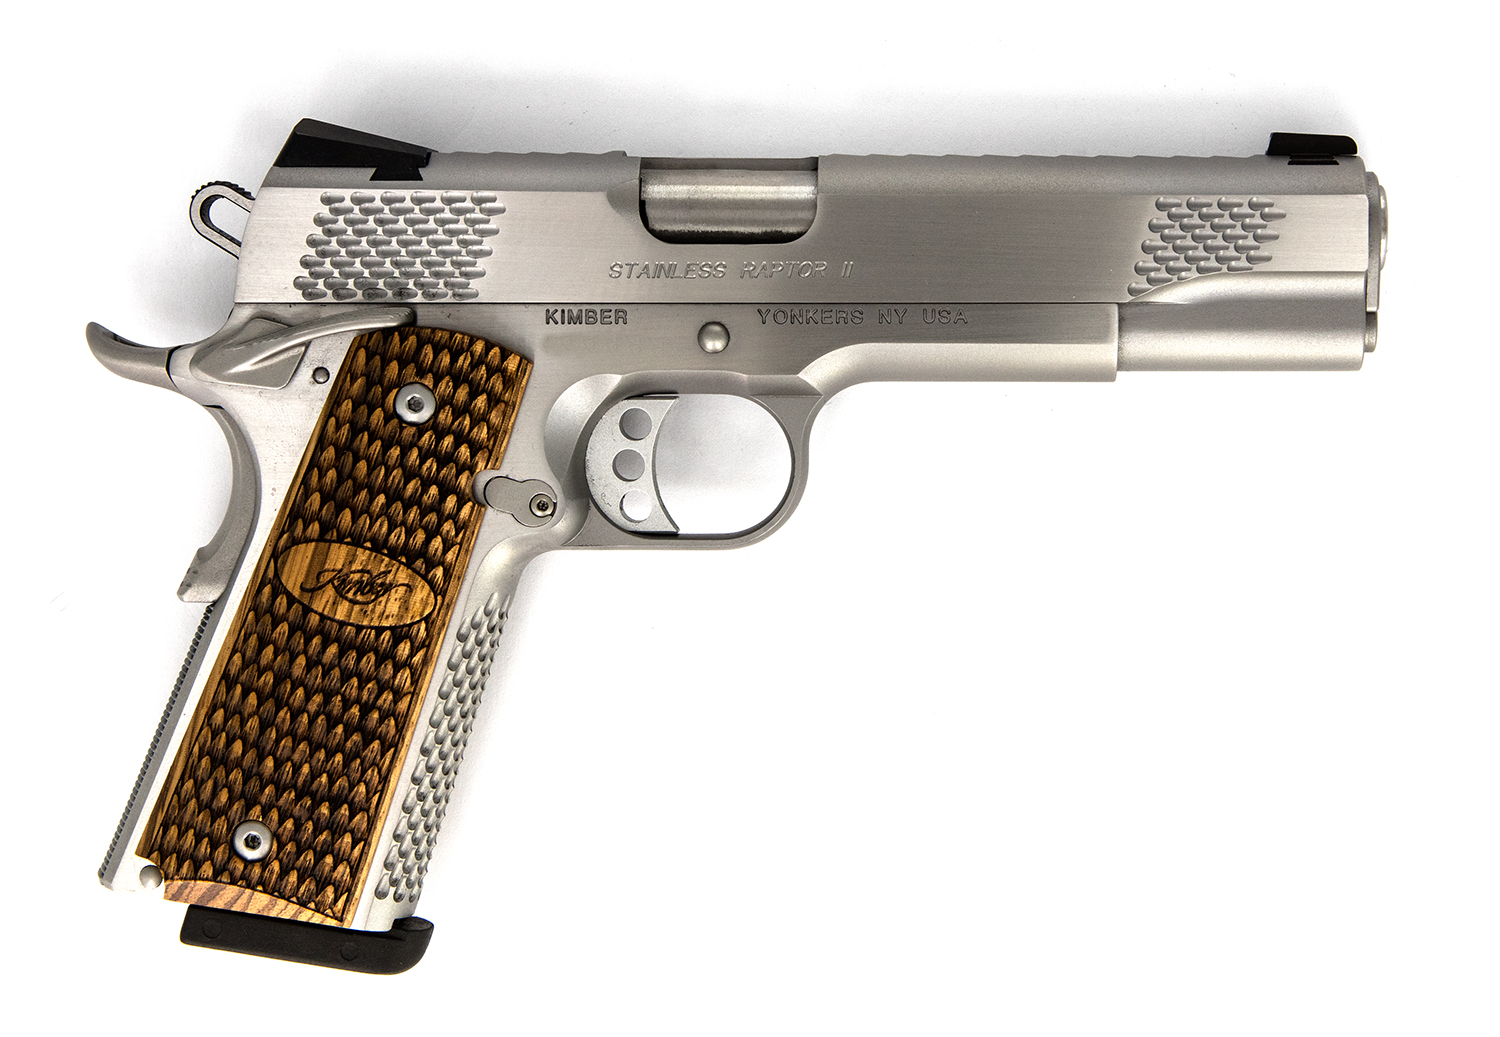 Kimber Stainless Raptor II 9mm